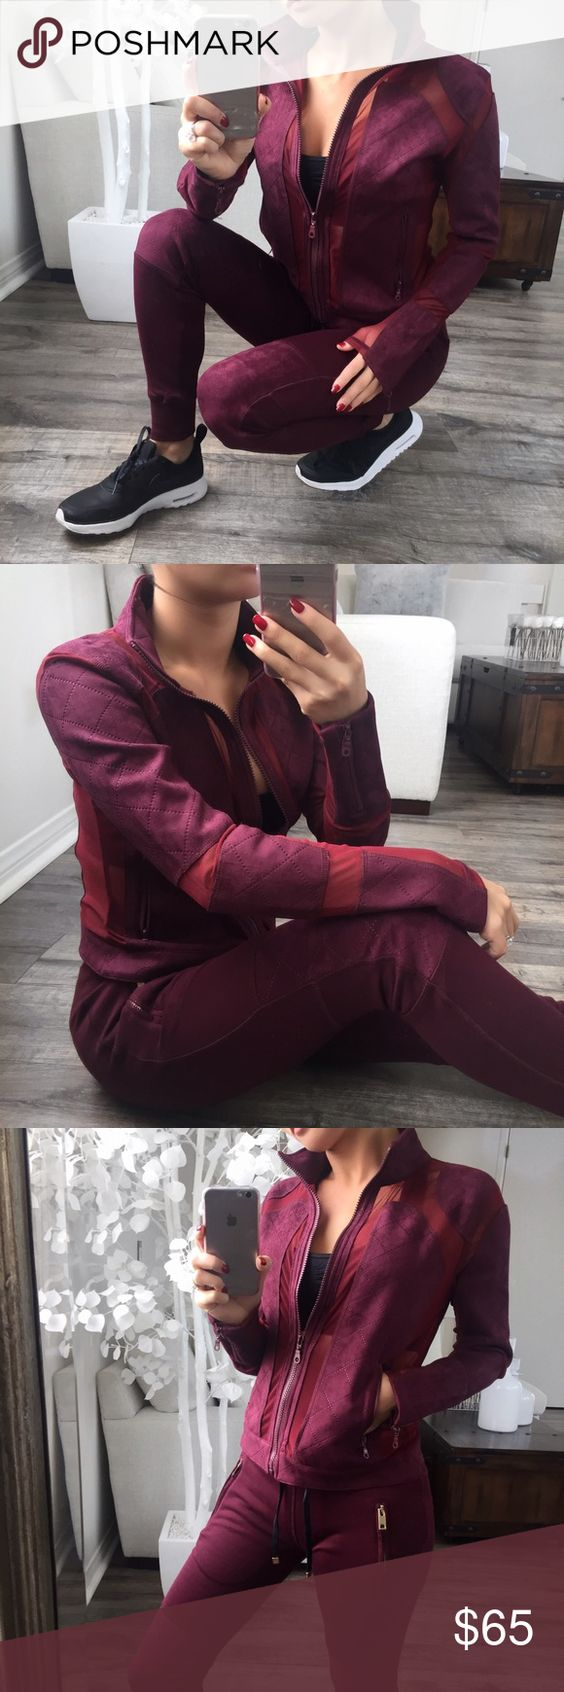 """OUT OF STOCK RESTOCKED! I wear track suits 80% of the time when I run errands. This is the perfect mix of stylish & casual. Suede patching & mesh panels. Very breathable also great for working out without overheating. Pair this with the matching bottoms & your favorite pair of sneakers. (Made for my stylish upscale ladies!)  Modeling: XS Material: Cotton (M): 19""""Pit to Pit 21""""Length Fit: Runs larger. Relaxed, 1 Inch difference in between sizes.   WILL NOT BE RESTOCKED SO PLEASE DO NOT ASK…"""